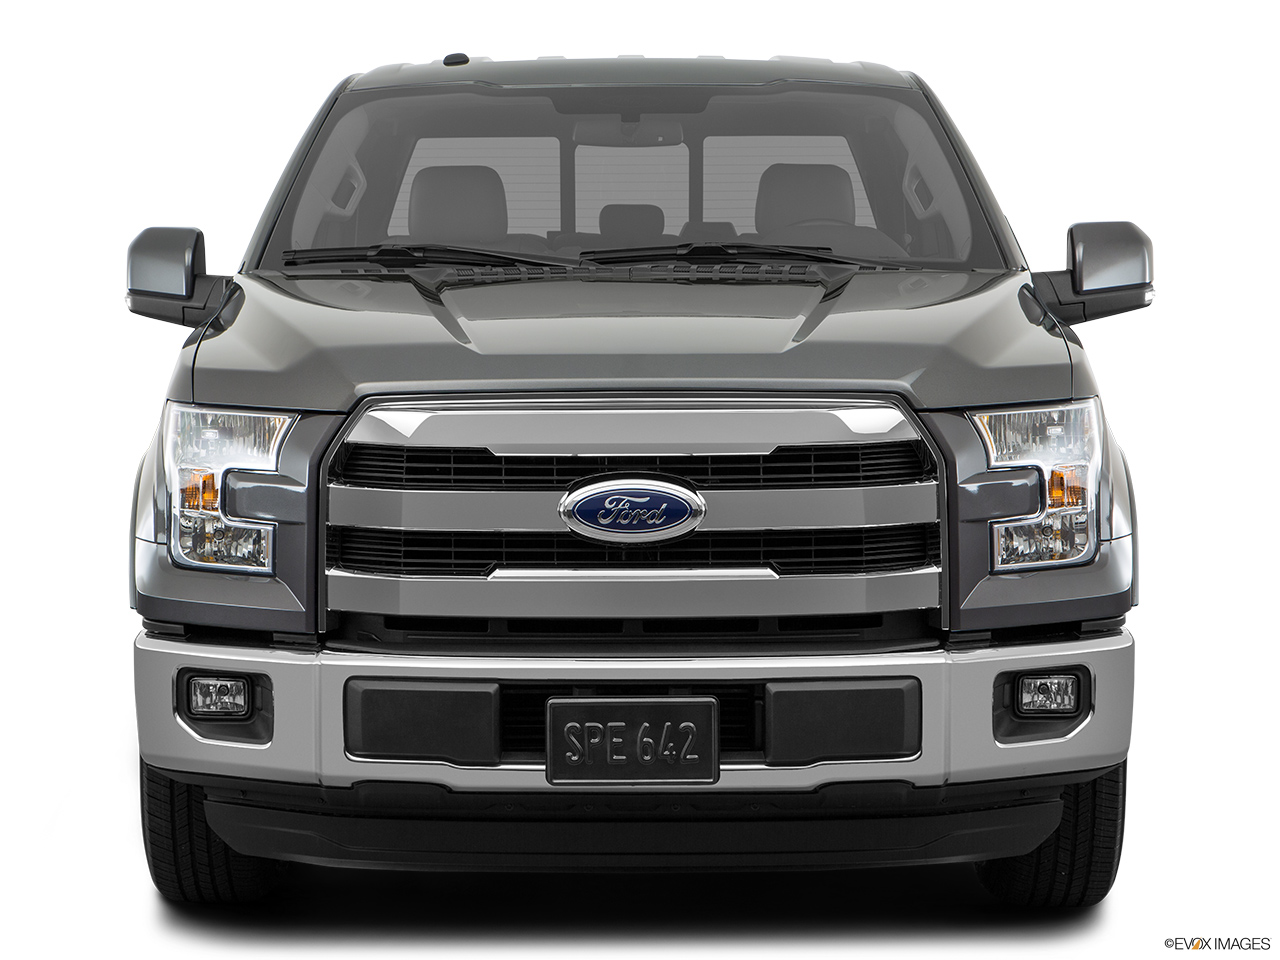 ford f 150 2017 5 0l super cab lariat fx4 luxury chrome pack in saudi arabia new car prices. Black Bedroom Furniture Sets. Home Design Ideas